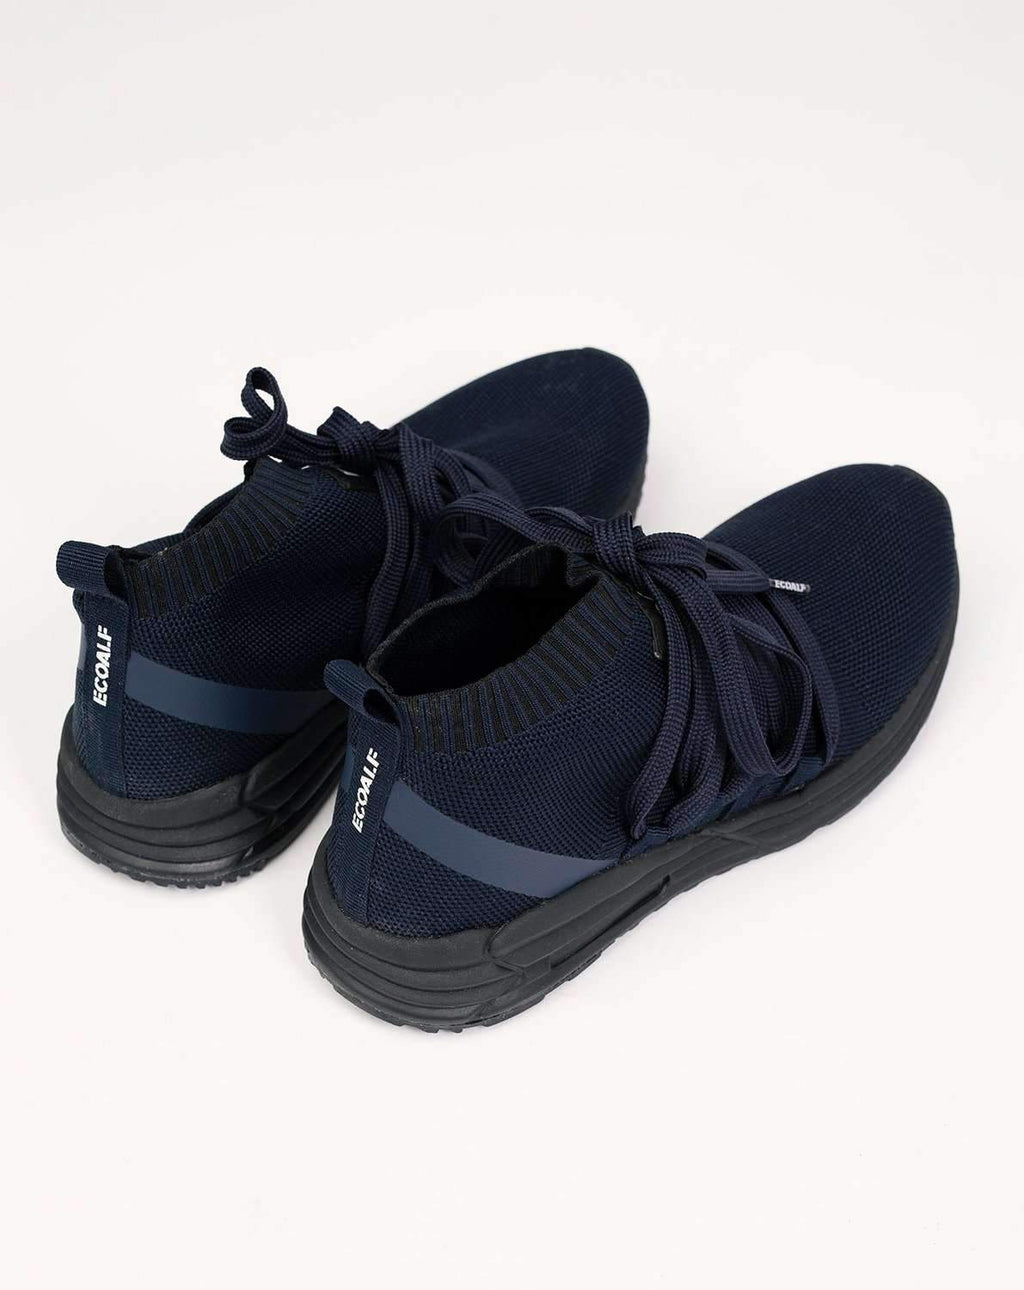 Boracay sneakers - Midnight navy - noia.shop